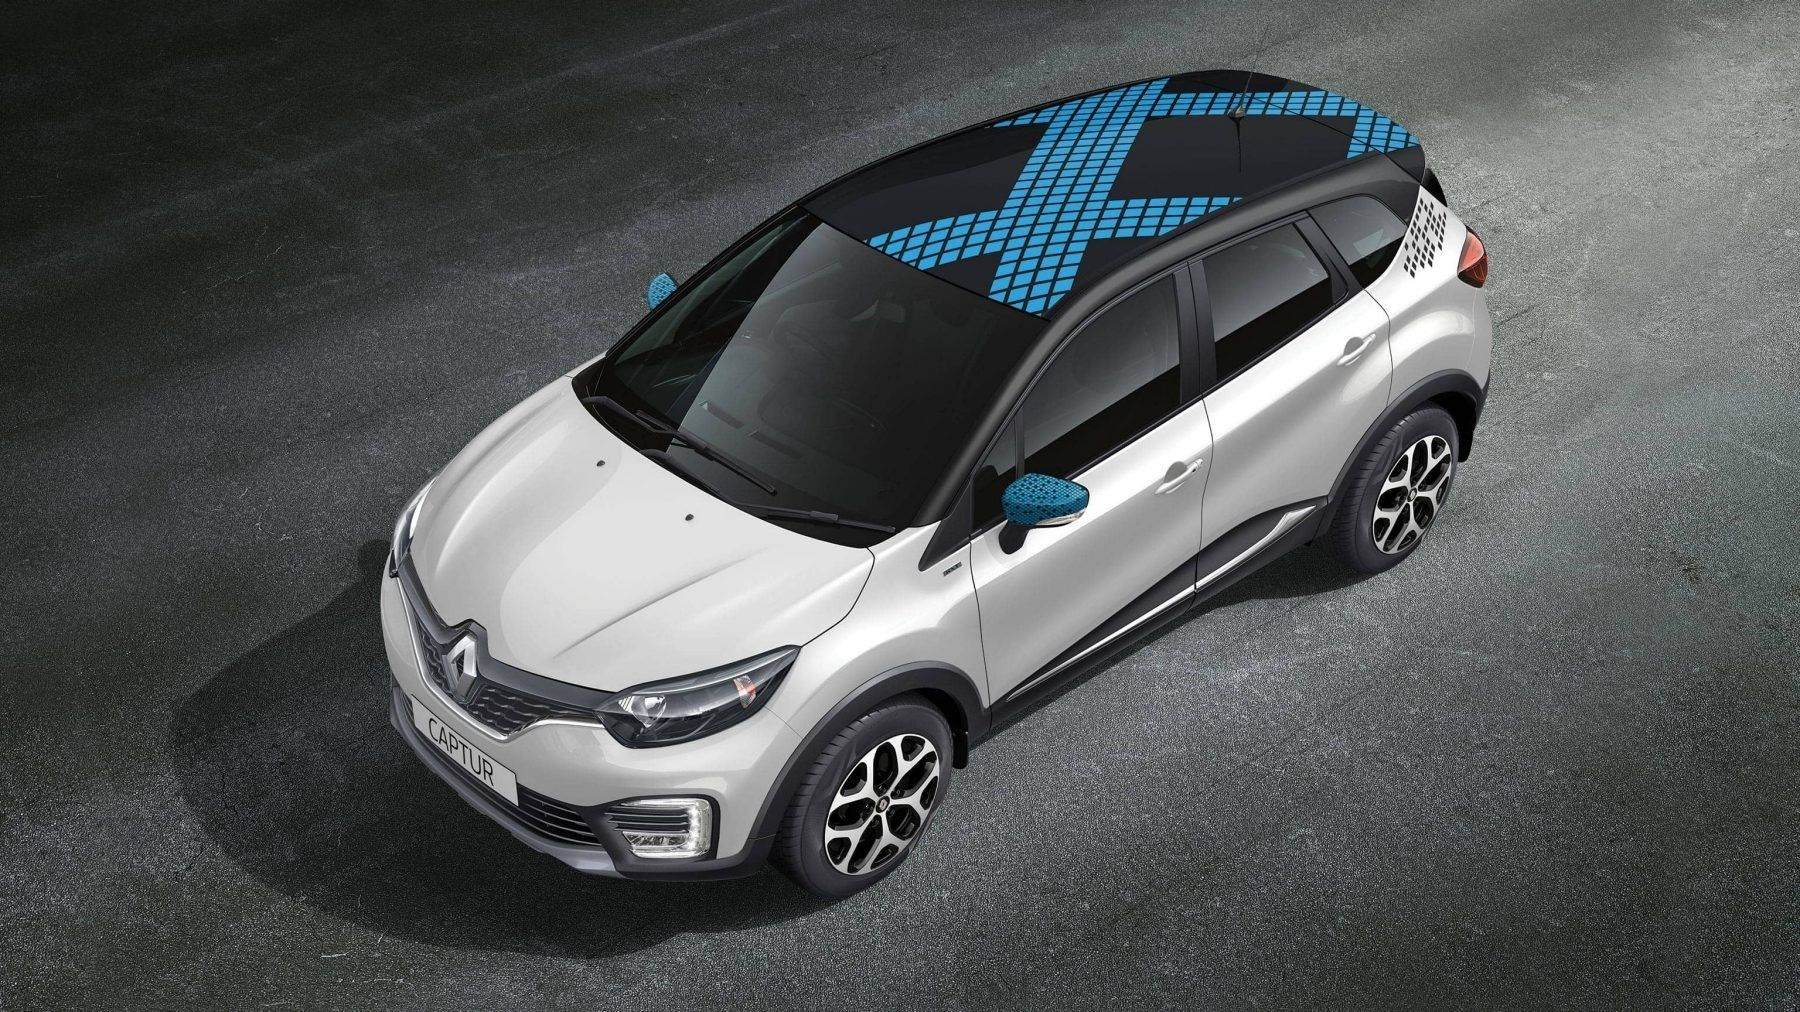 Renault Captur Is Designed For Personalization Renault Offers A